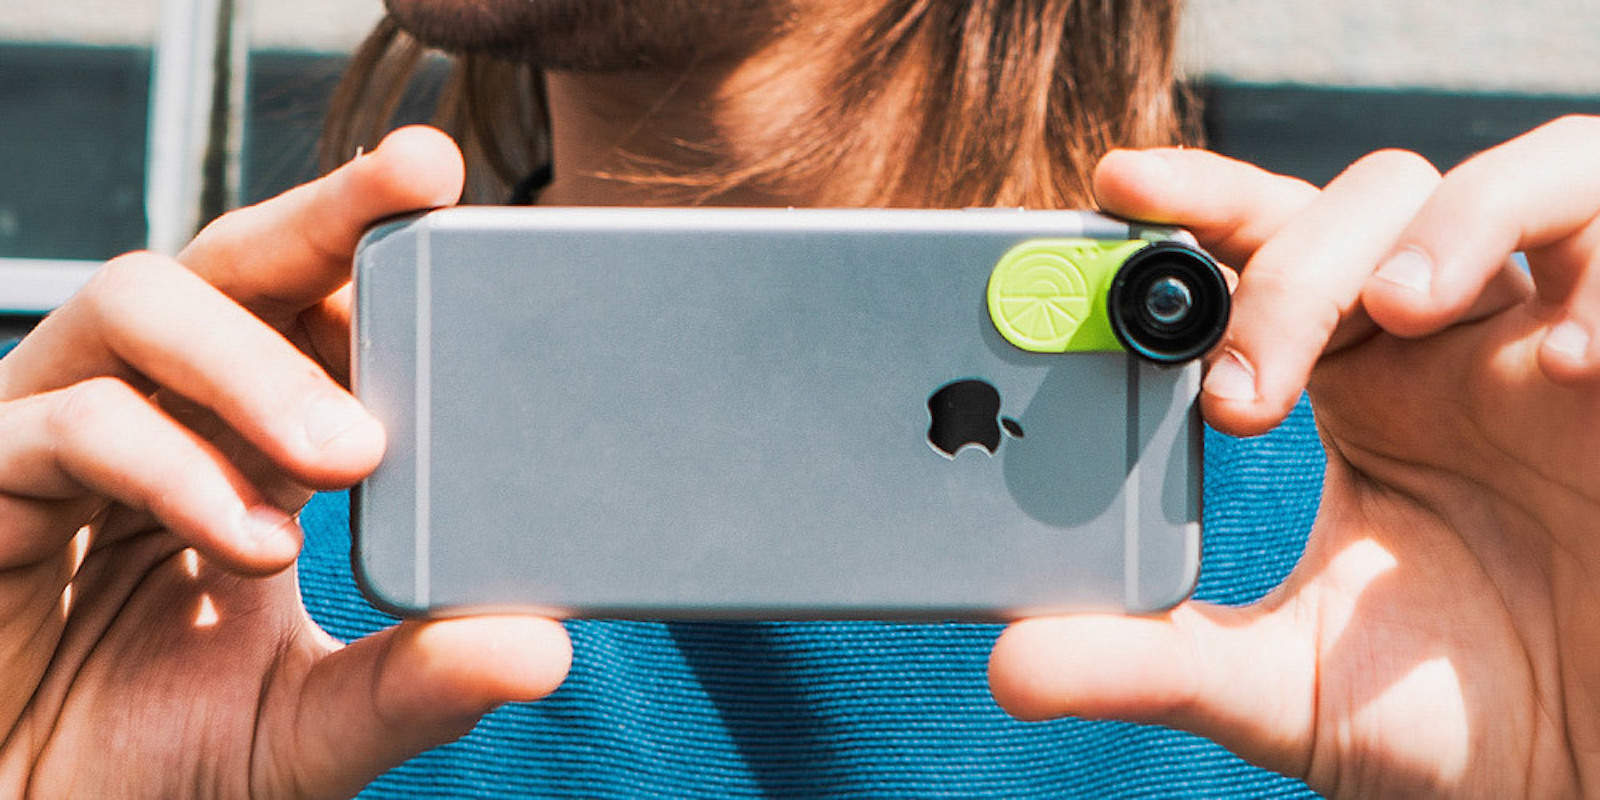 Instantly add a pair of powerful new lenses to your phone or tablet with this click-on adapter.